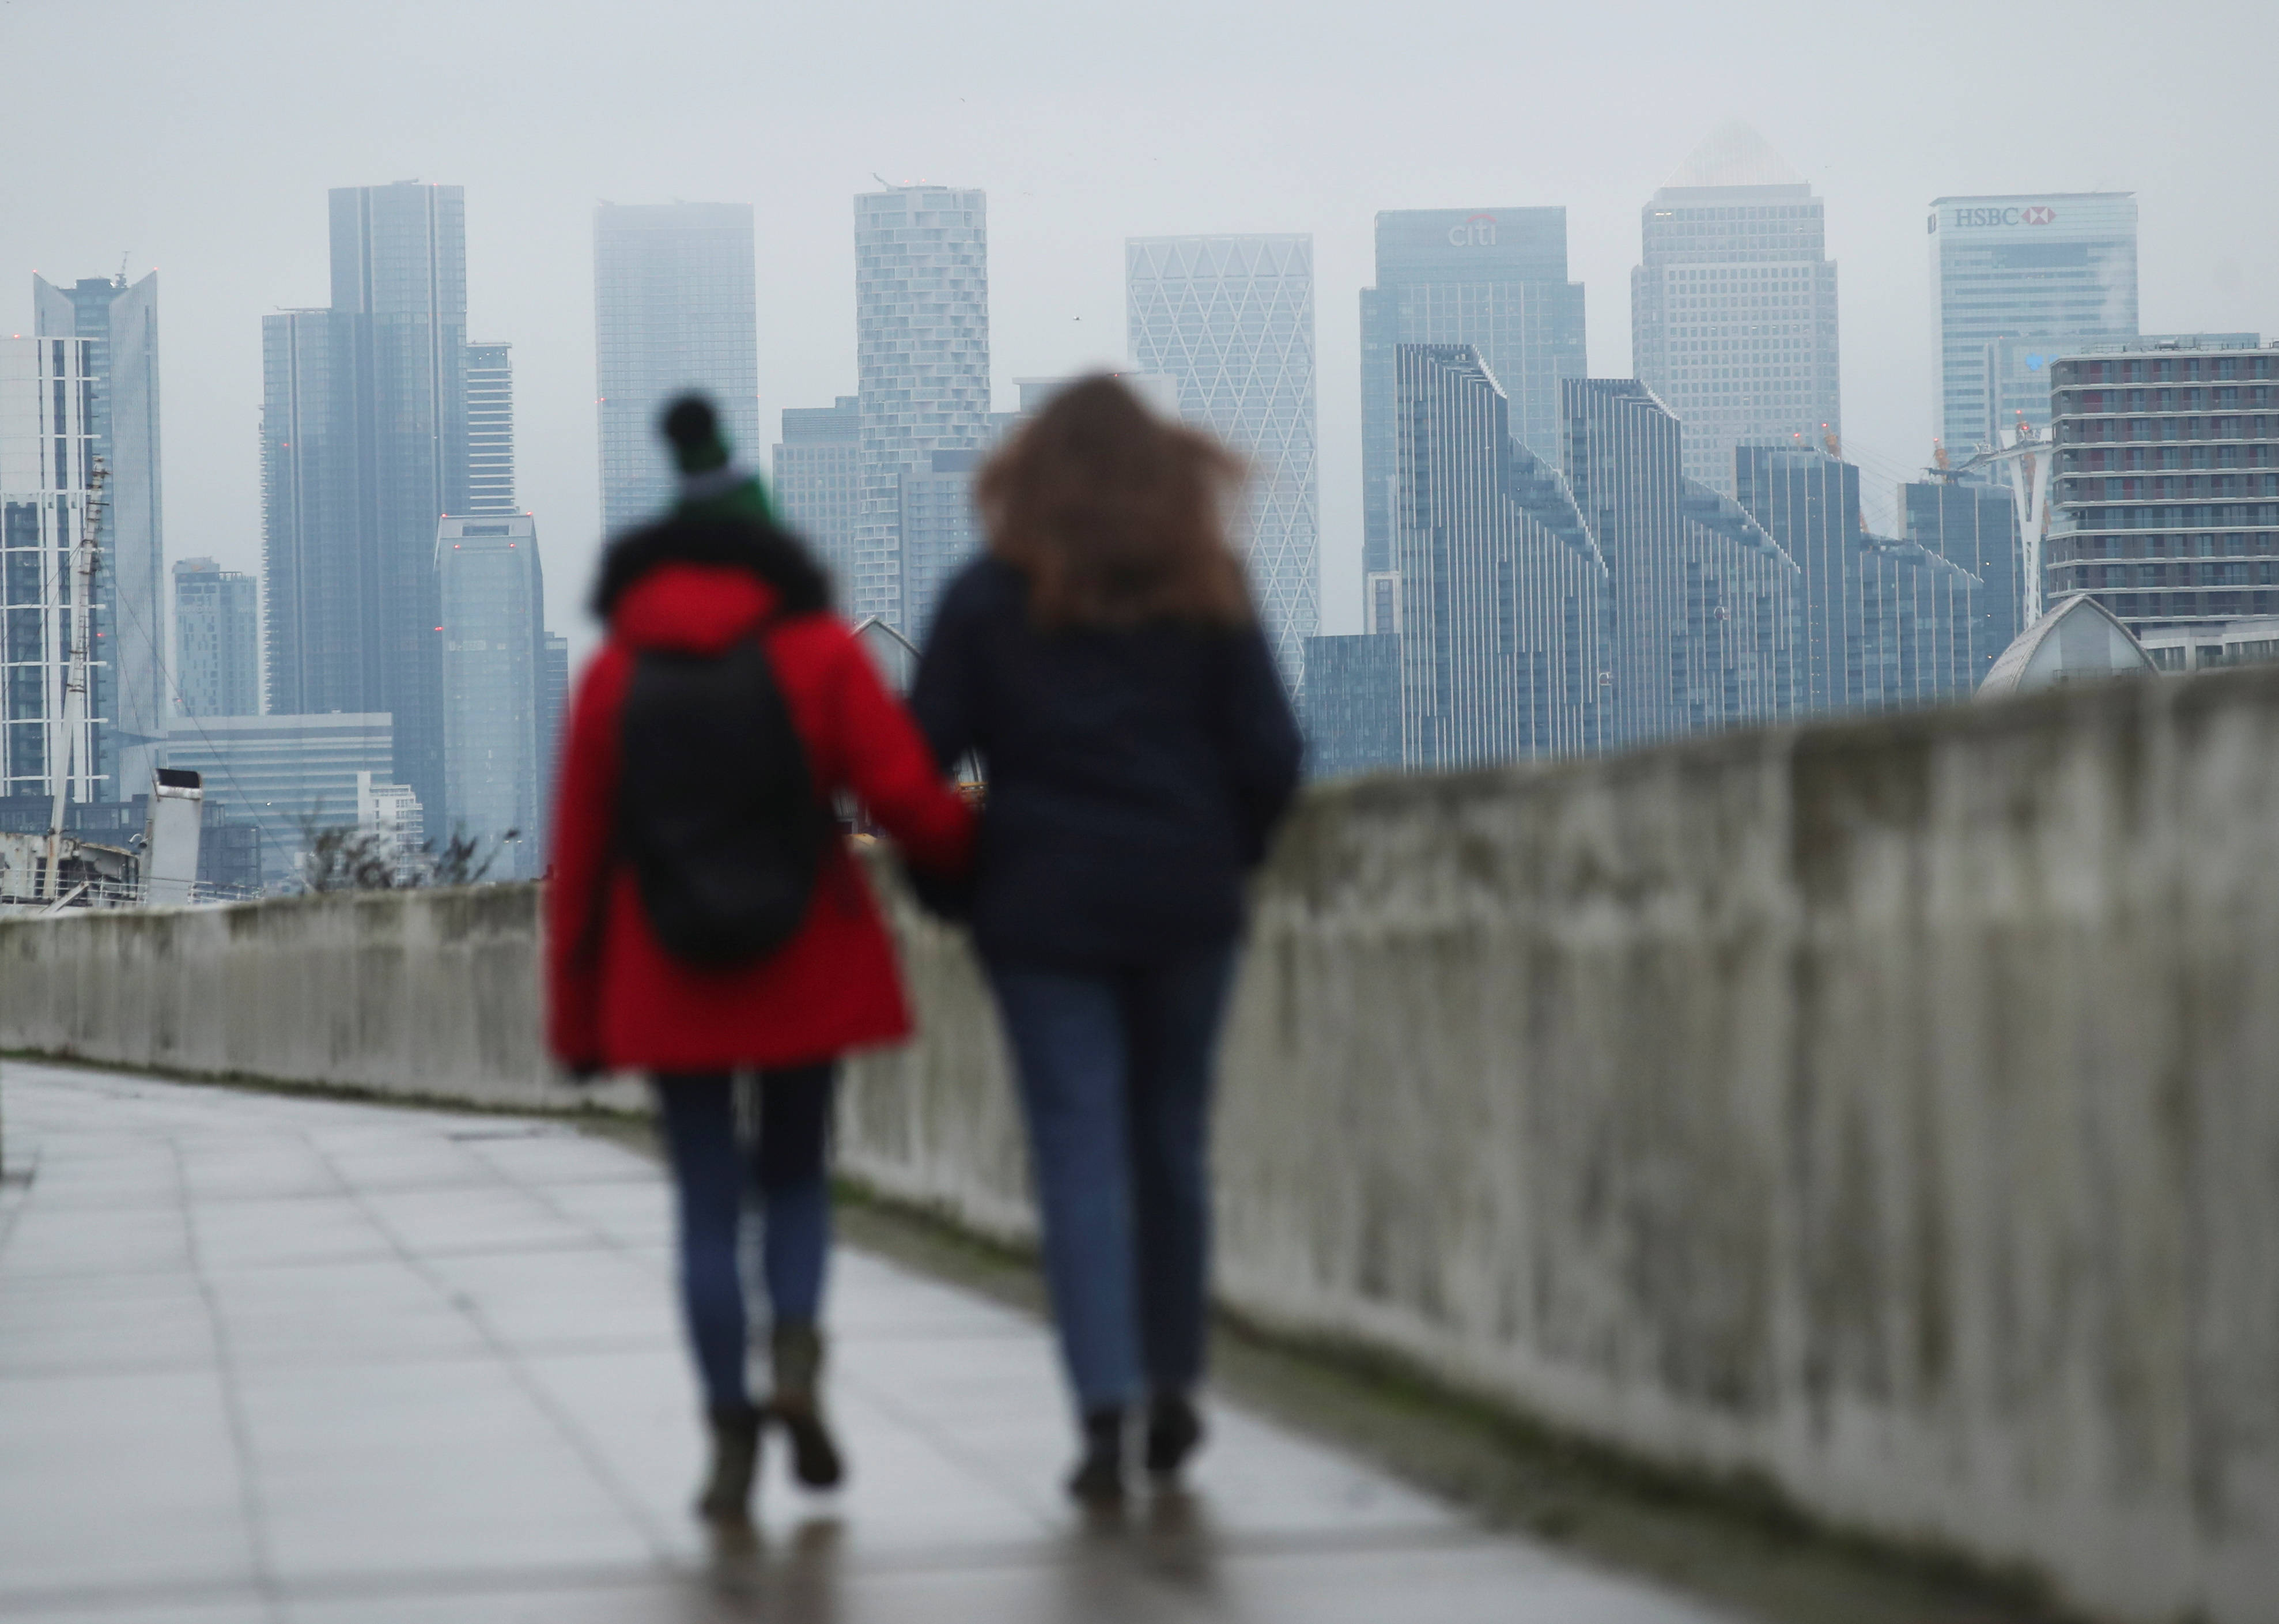 Buildings are seen in the Canary Wharf business district, as people walk along a footpath, amid the outbreak of the coronavirus disease (COVID-19), in London, Britain January 27, 2021. REUTERS/Peter Cziborra